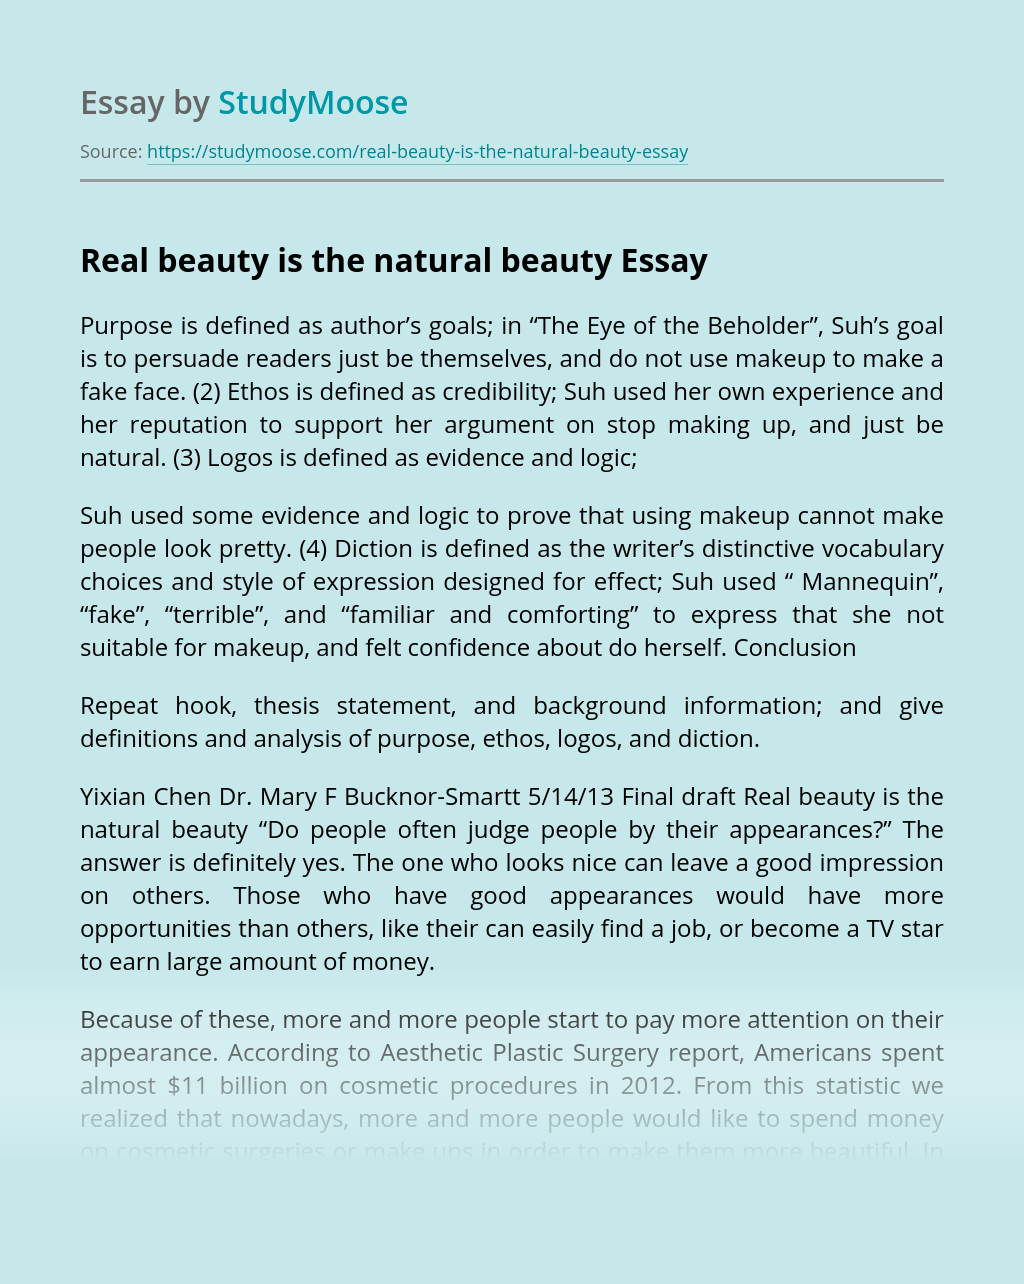 Real beauty is the natural beauty